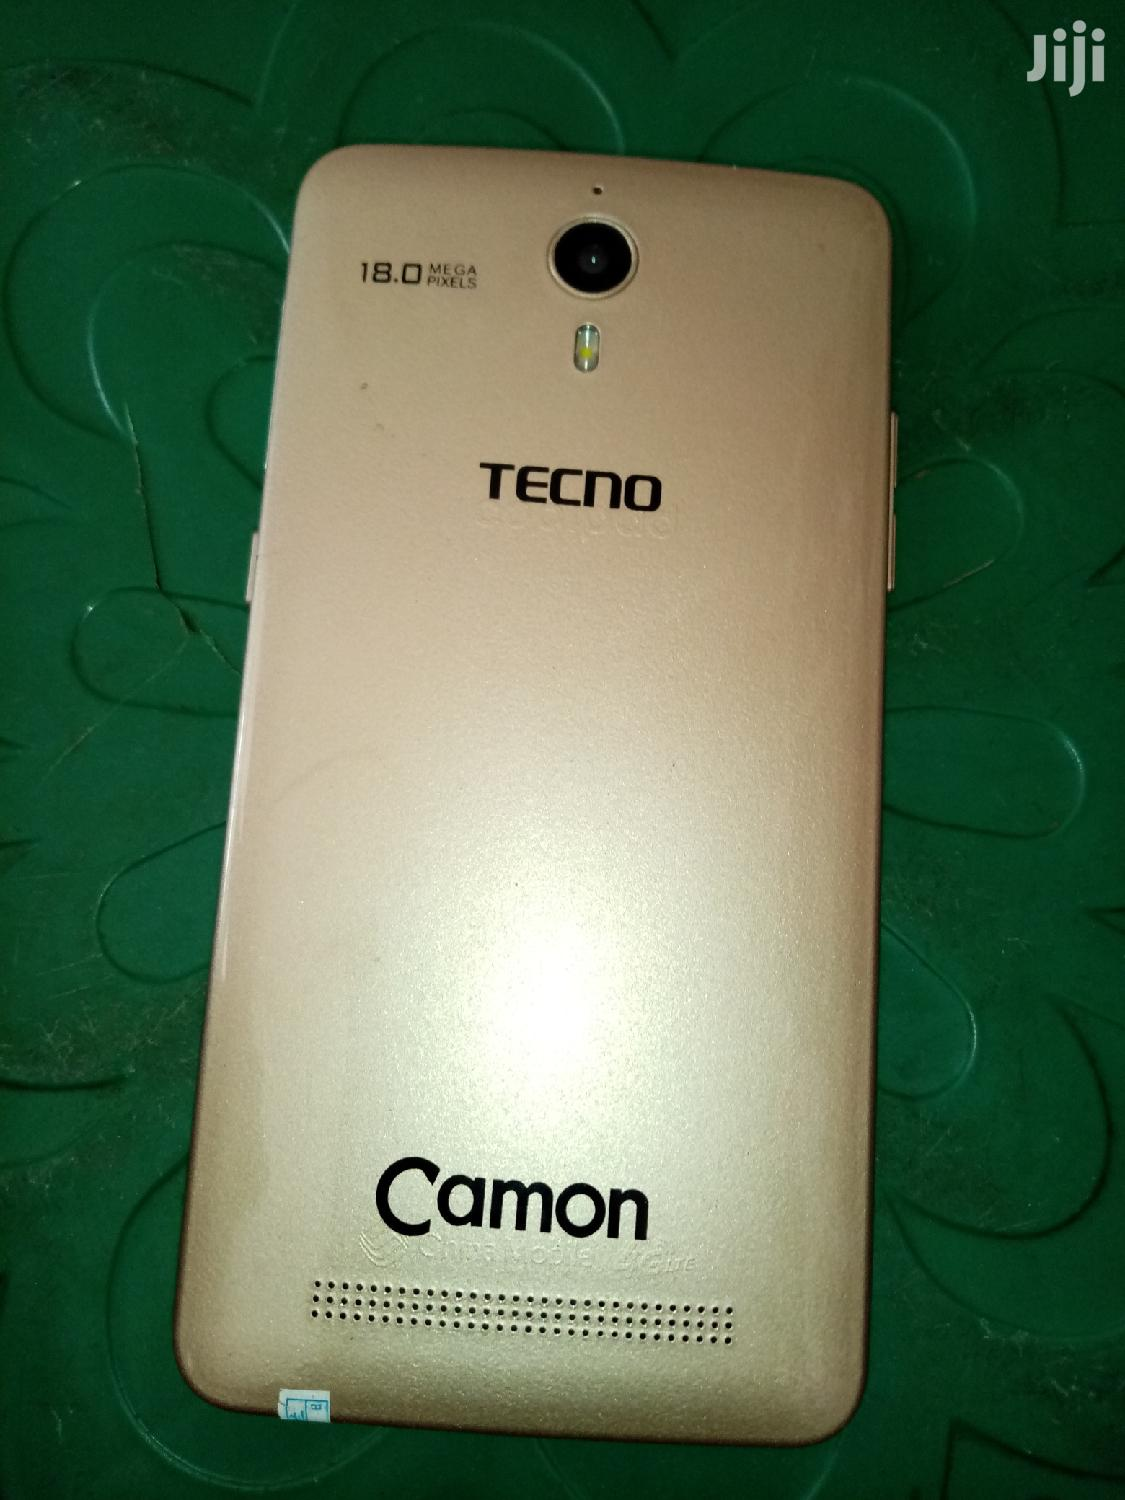 New Tecno T345 Gold | Mobile Phones for sale in Accra Metropolitan, Greater Accra, Ghana